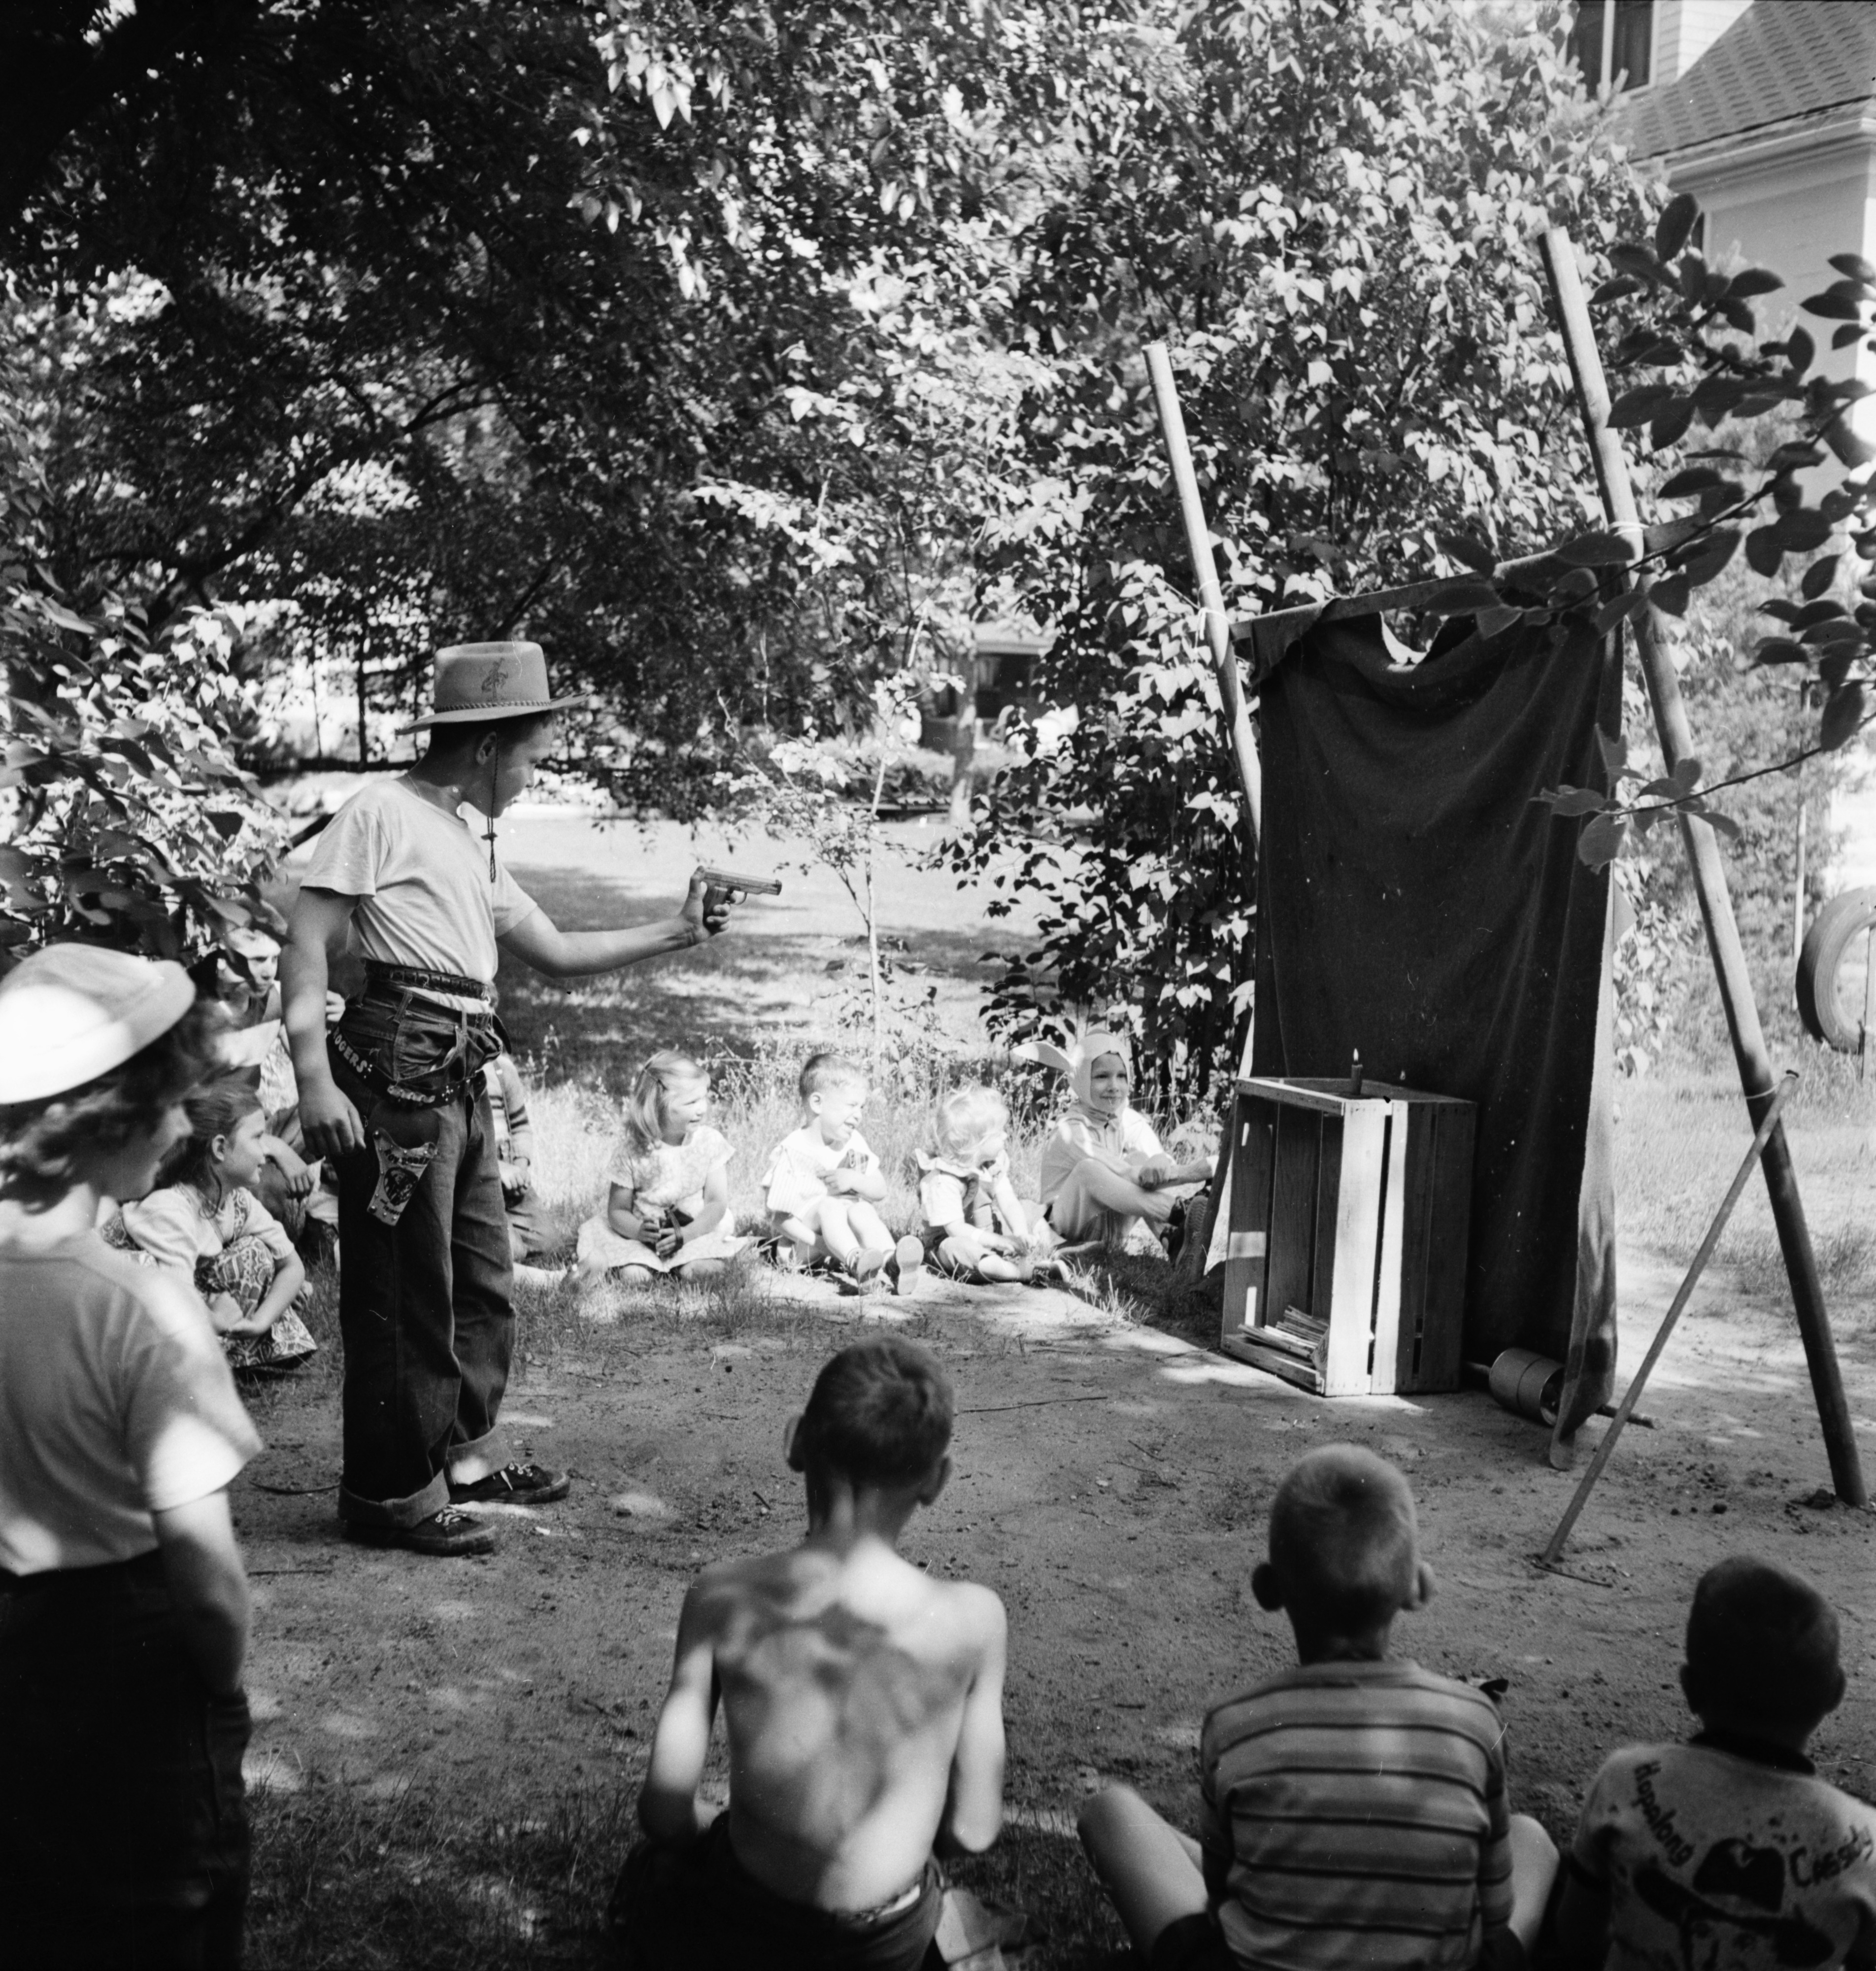 Cowboy at a children's circus on Church street, 1950 image